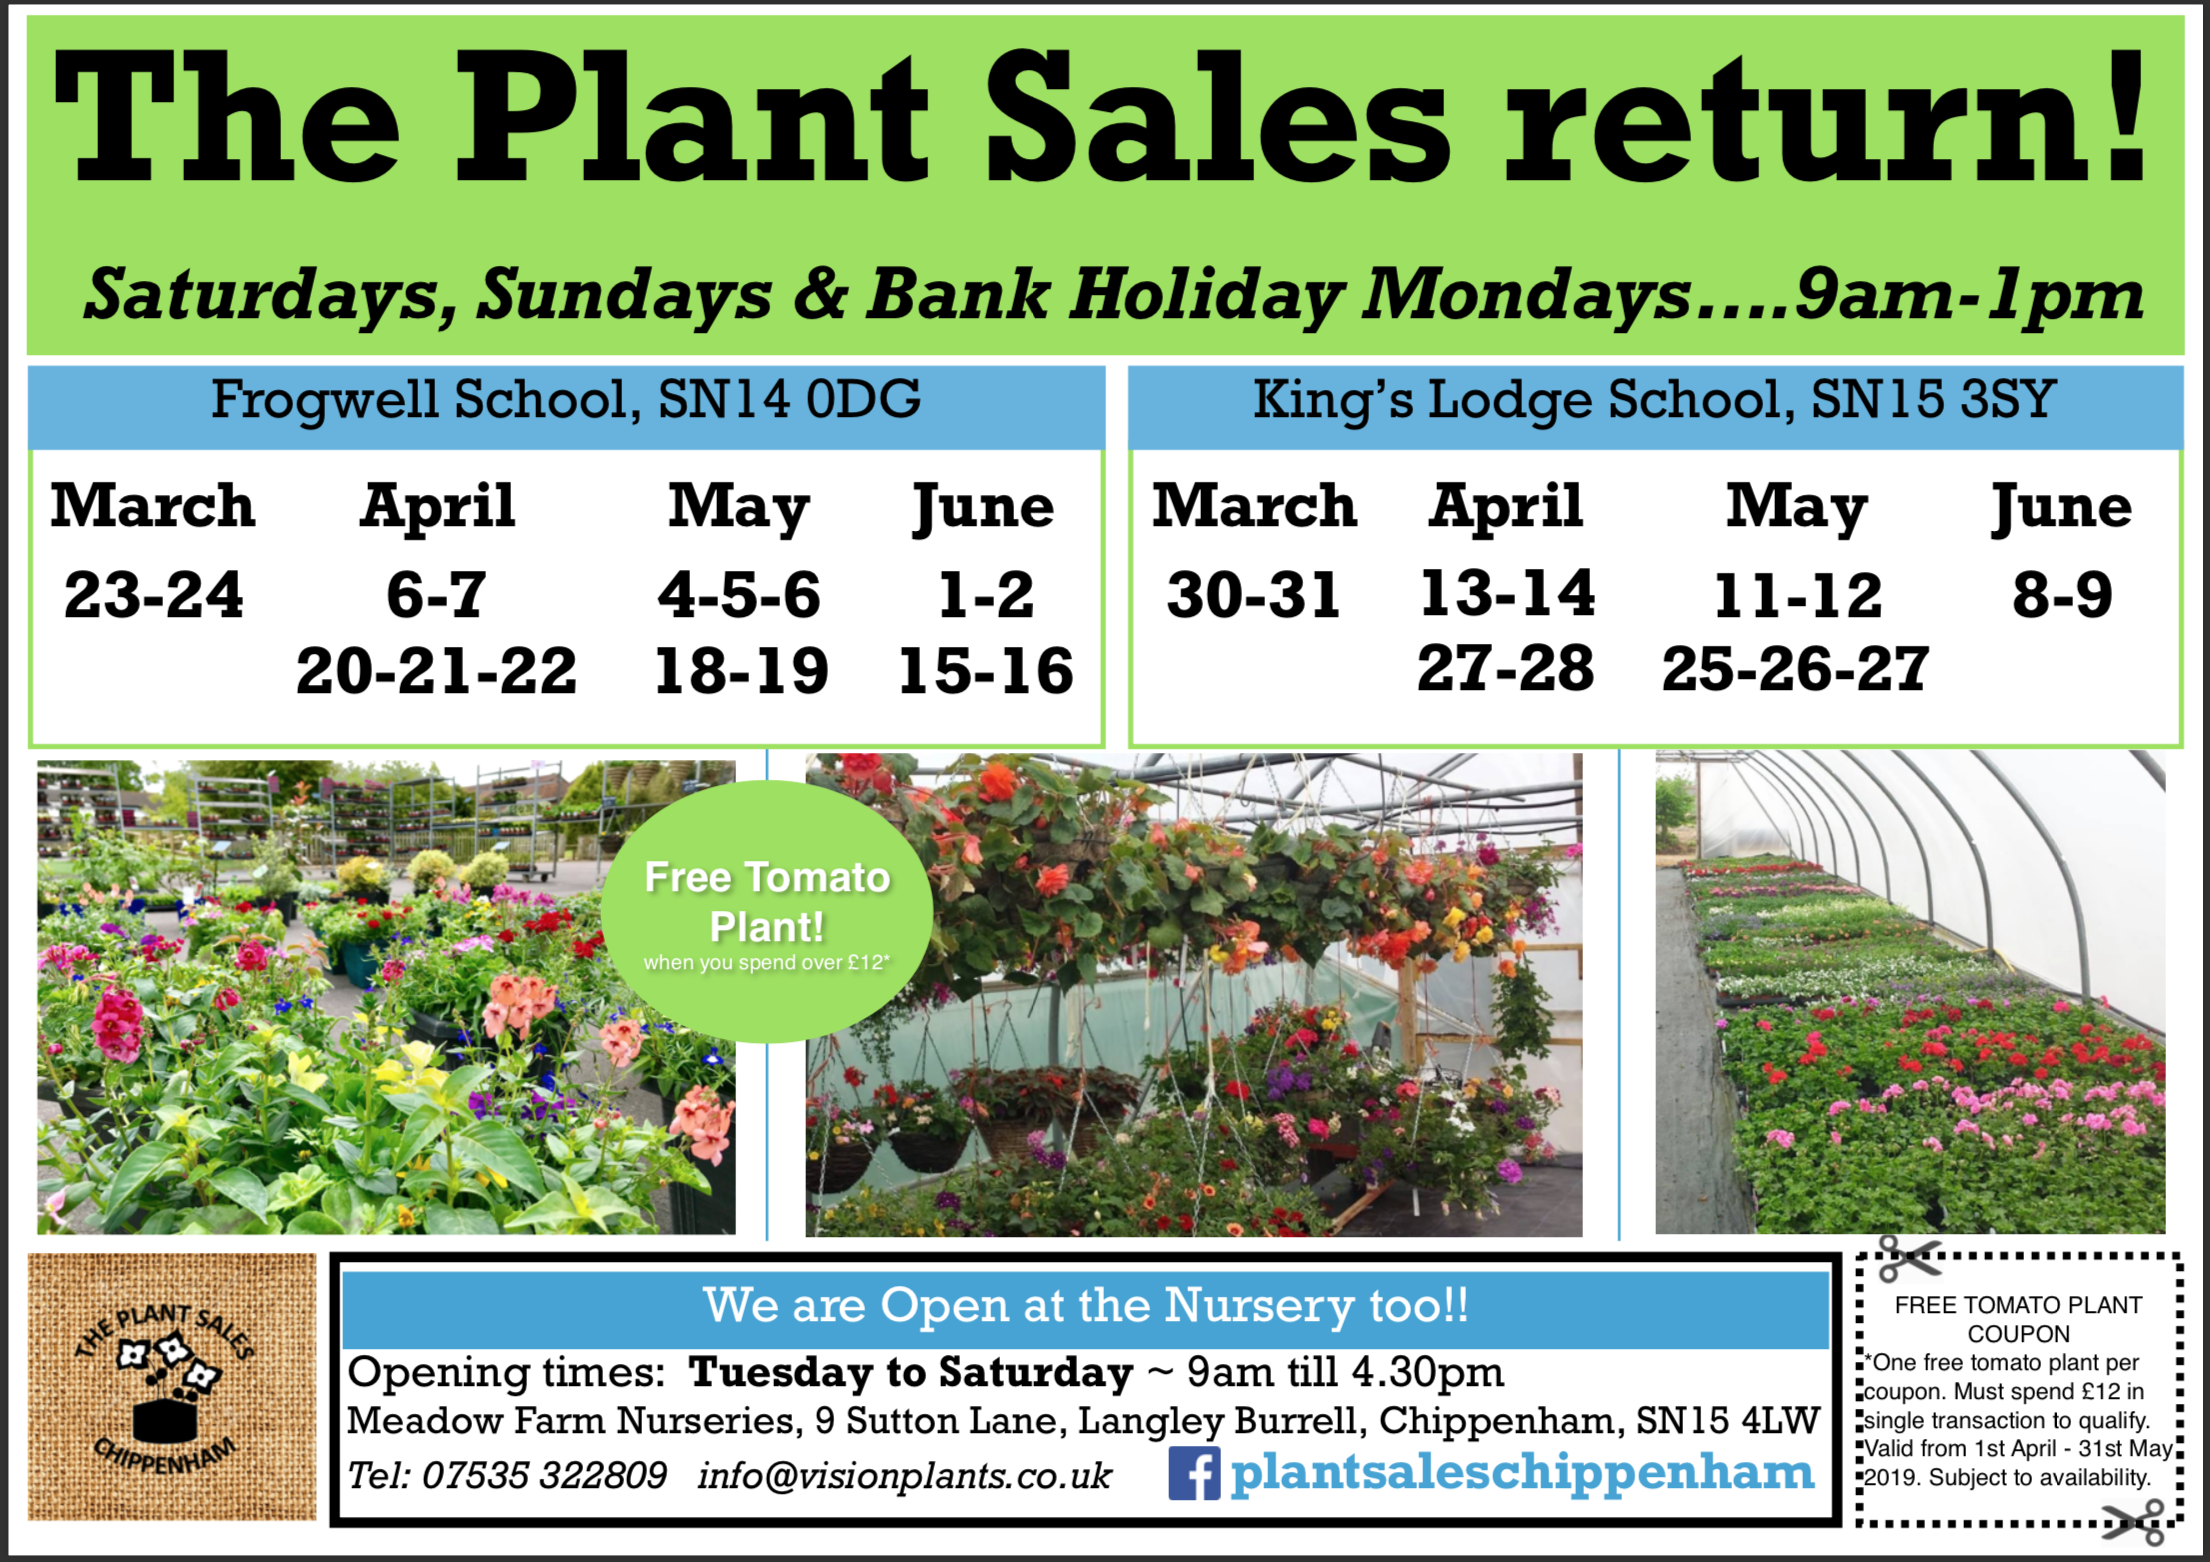 The Plant Sales Return!